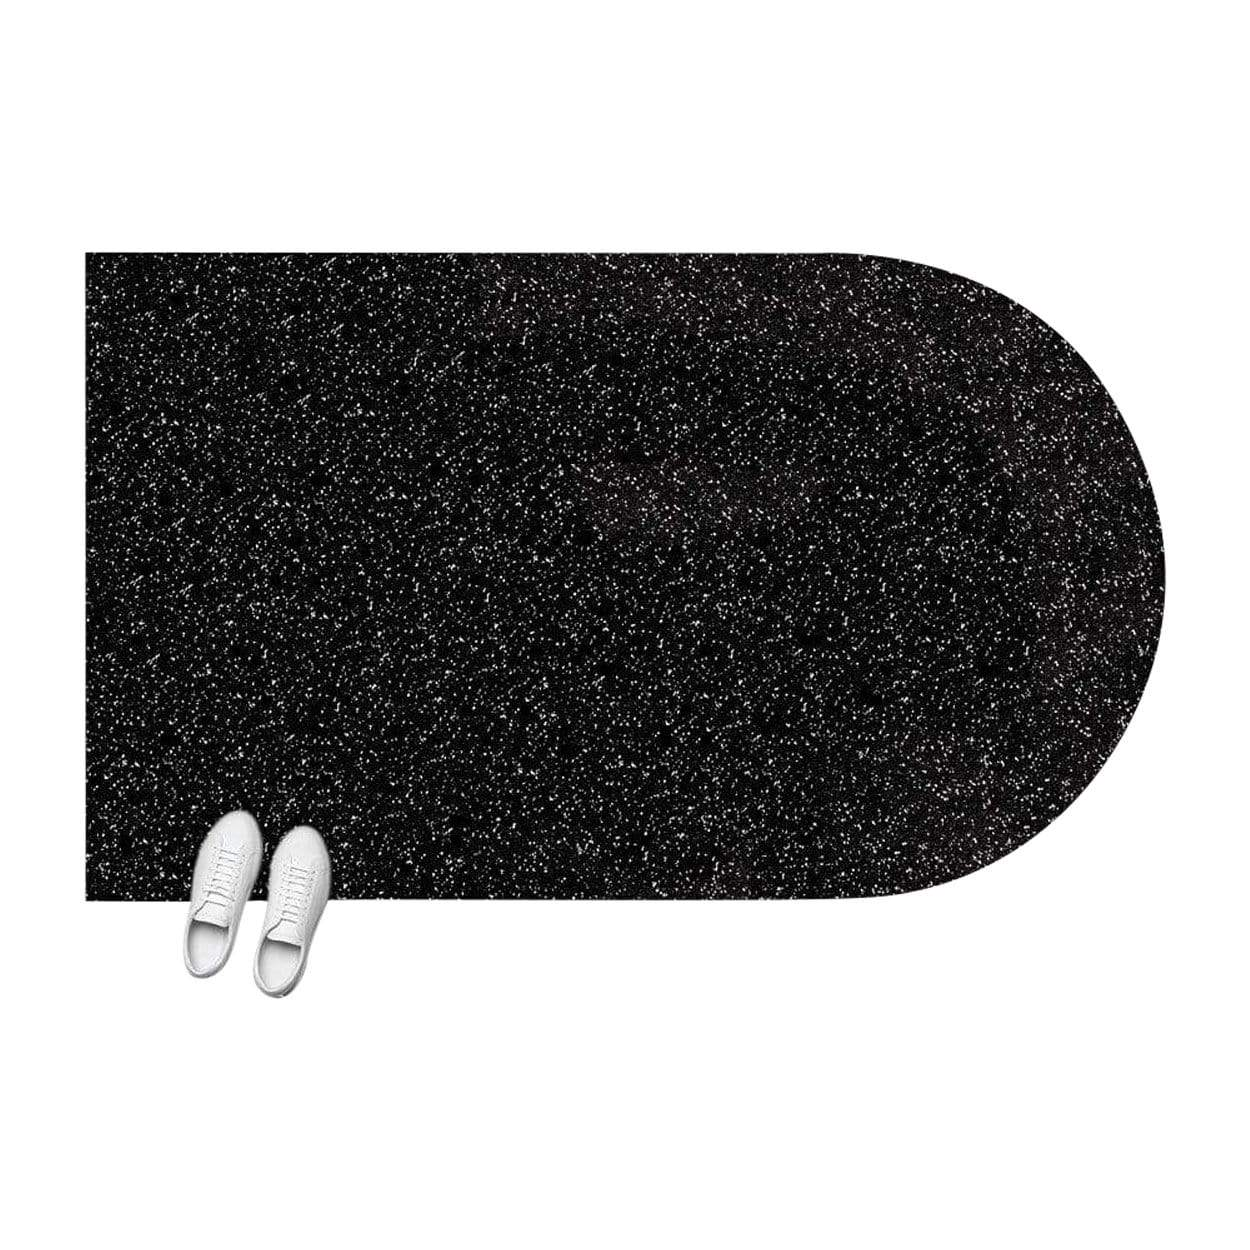 Speckled Black Half Capsule Floor Mat